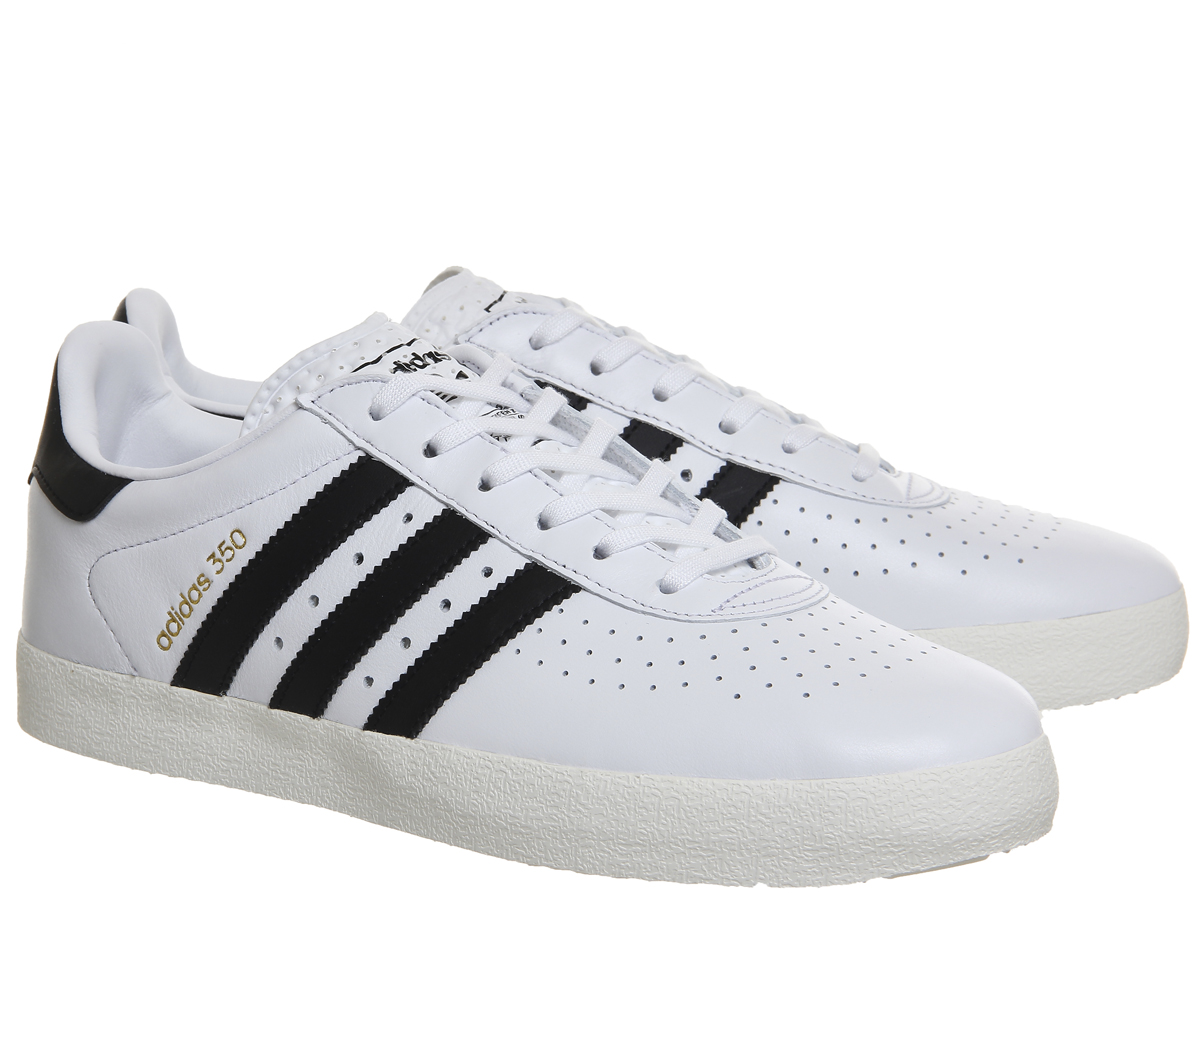 28da6adc3 Adidas Adidas 350 Trainers WHITE BLACK OFF WHITE Trainers Shoes